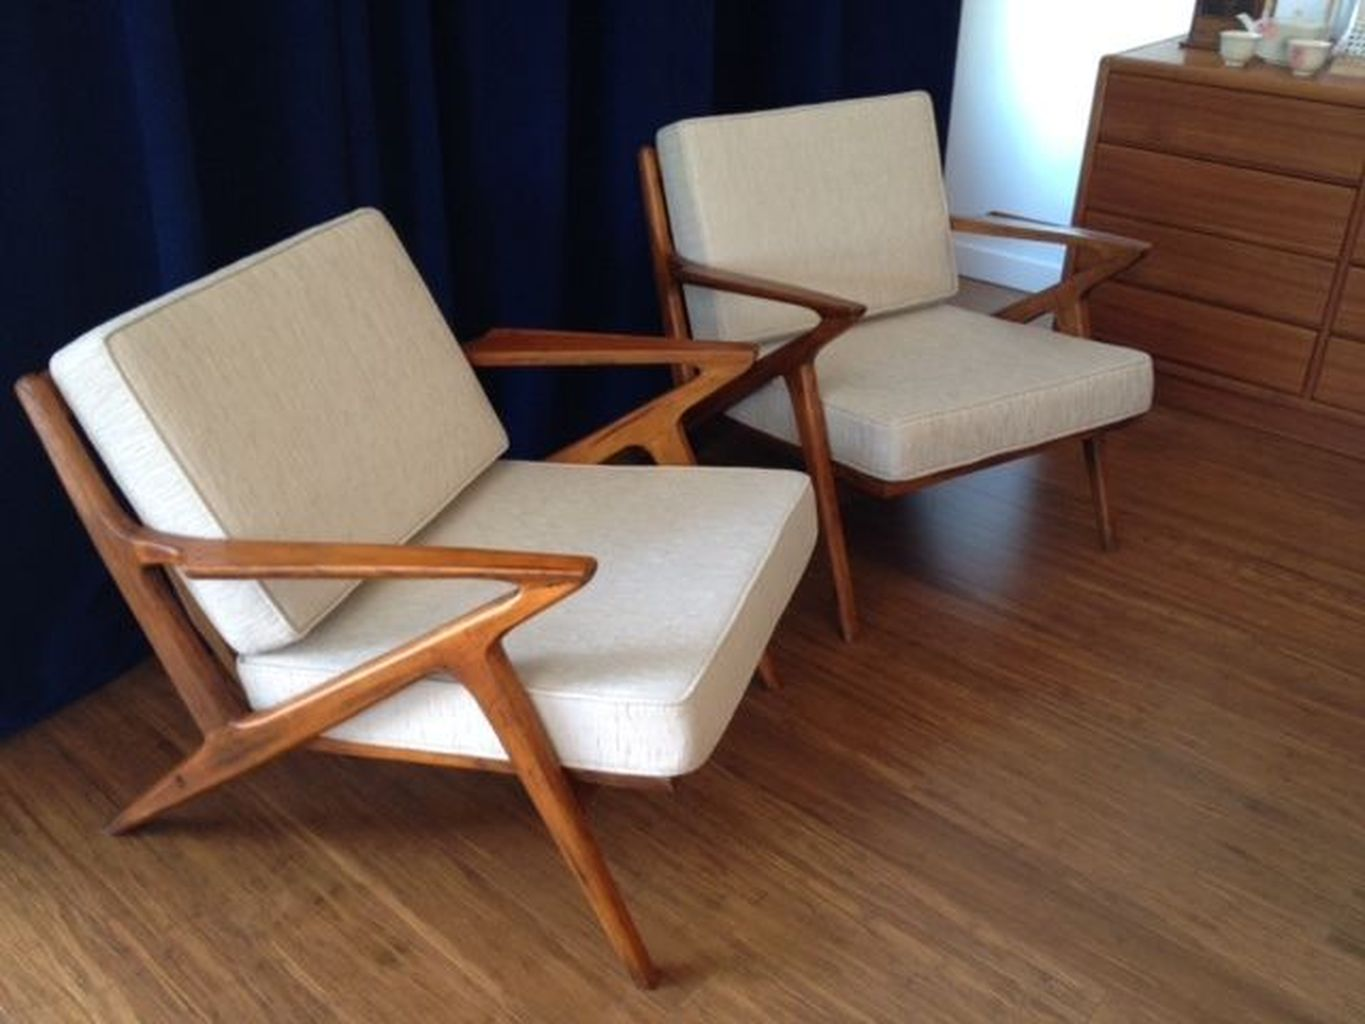 Modern Mid Century Lounge Chairs Ideas For Your Home 92